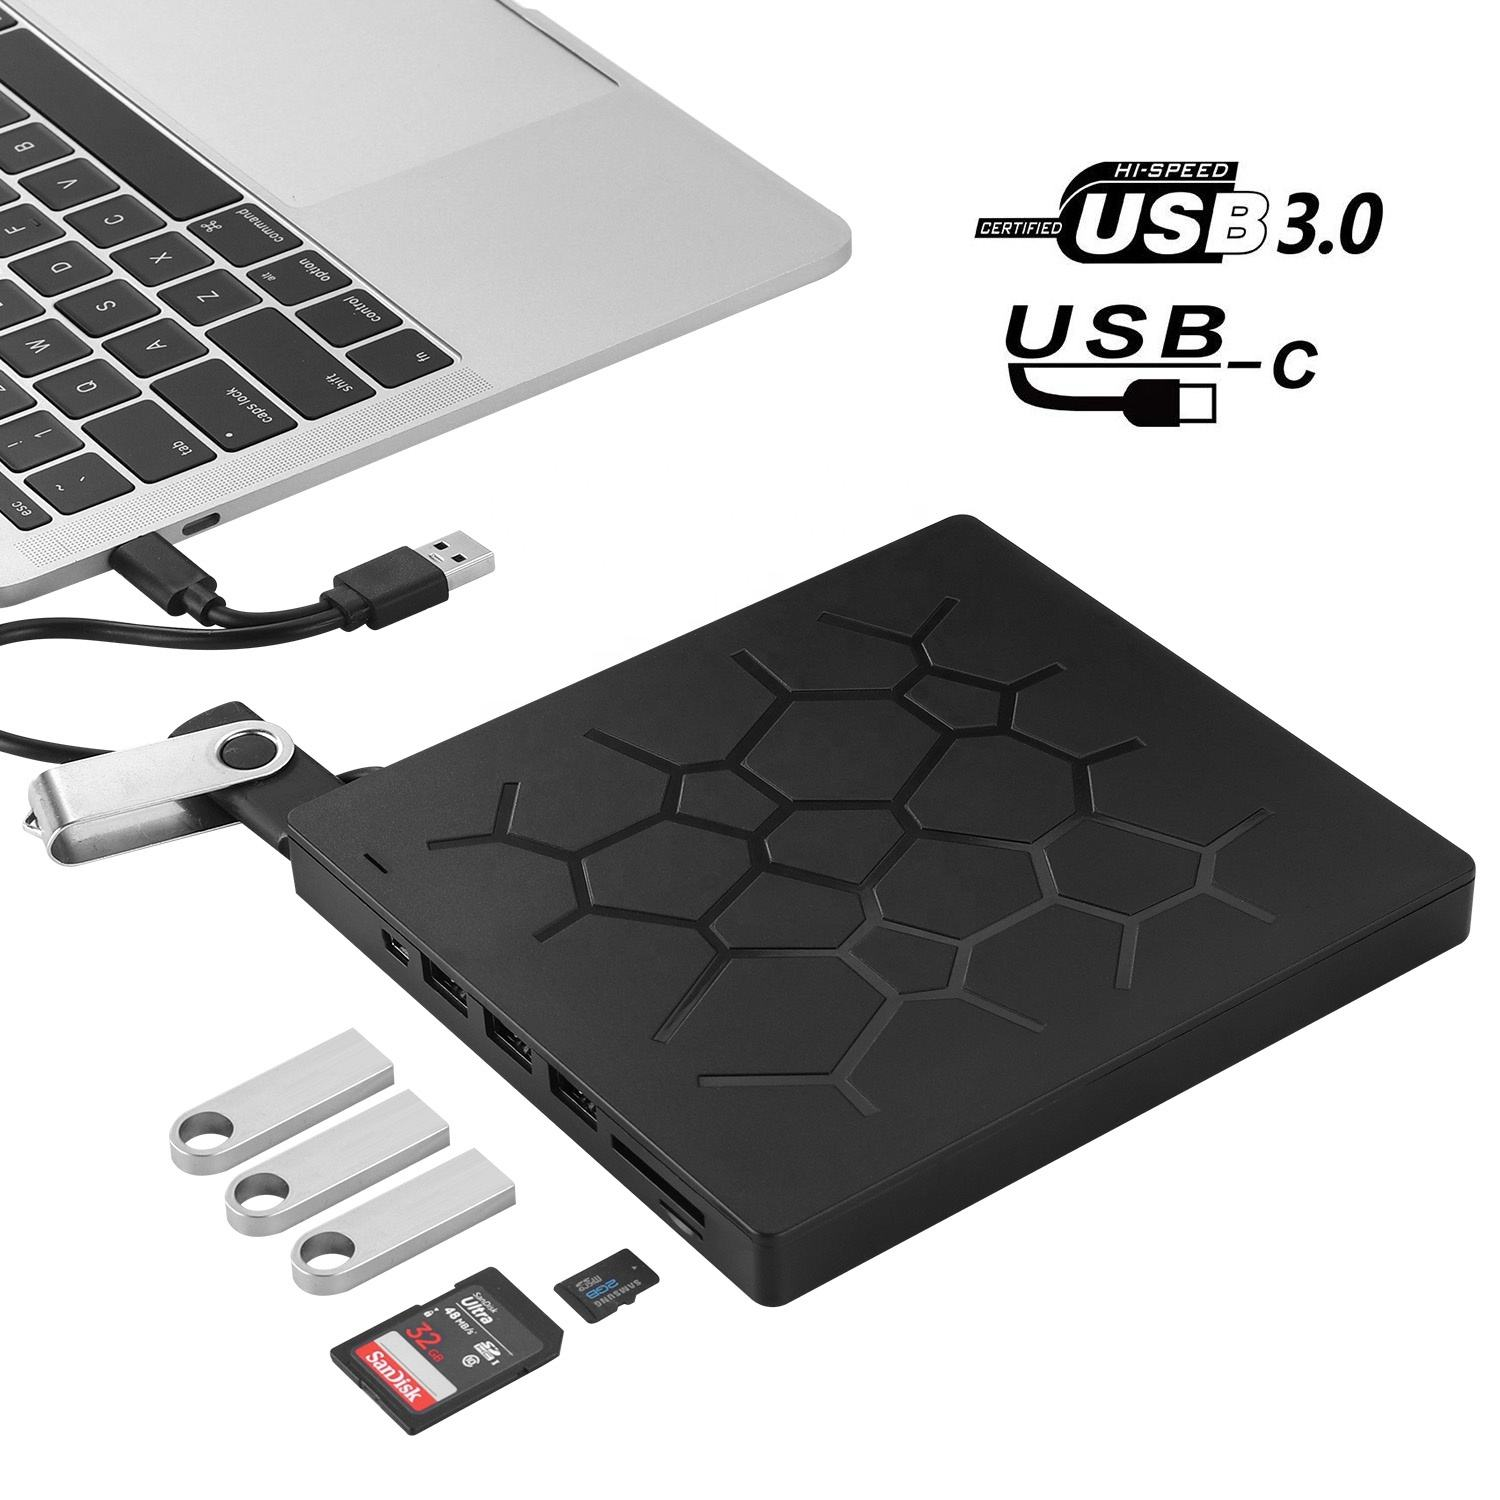 2020 neue ultra-dünne Multifunction External USB 3.0 High Speed <span class=keywords><strong>DVD</strong></span> RW Burner <span class=keywords><strong>CD</strong></span> Writer Portable Optical Drive usb typ-c